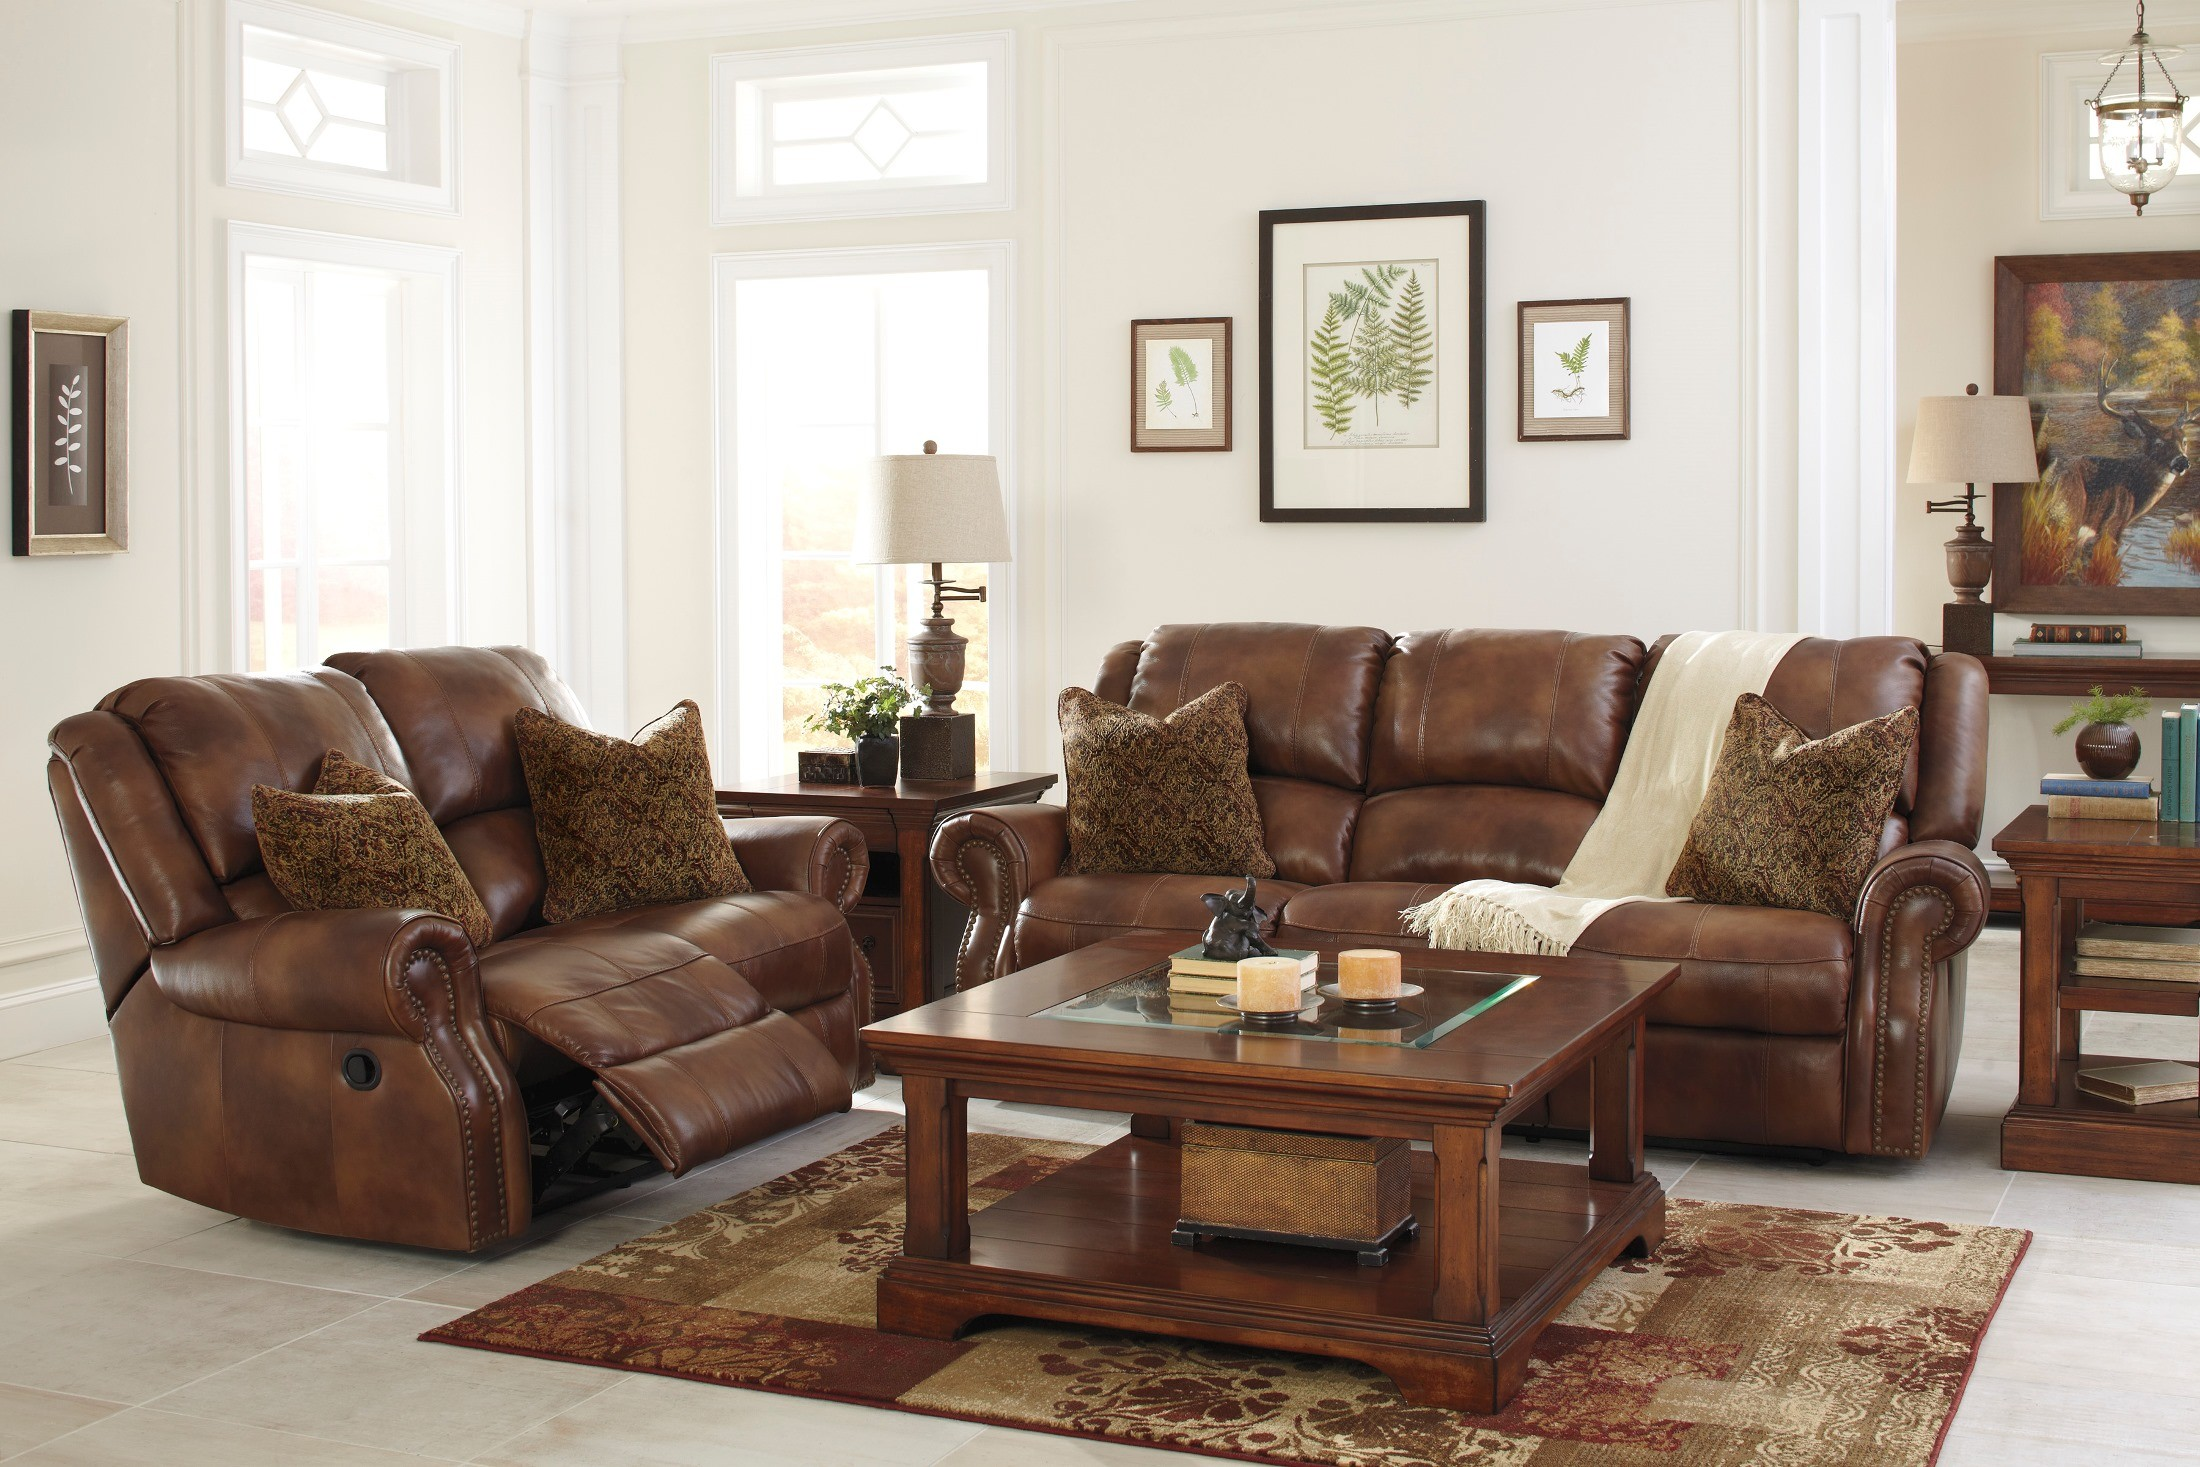 Walworth Auburn Power Reclining Living Room Set From Ashley U78001 87 74